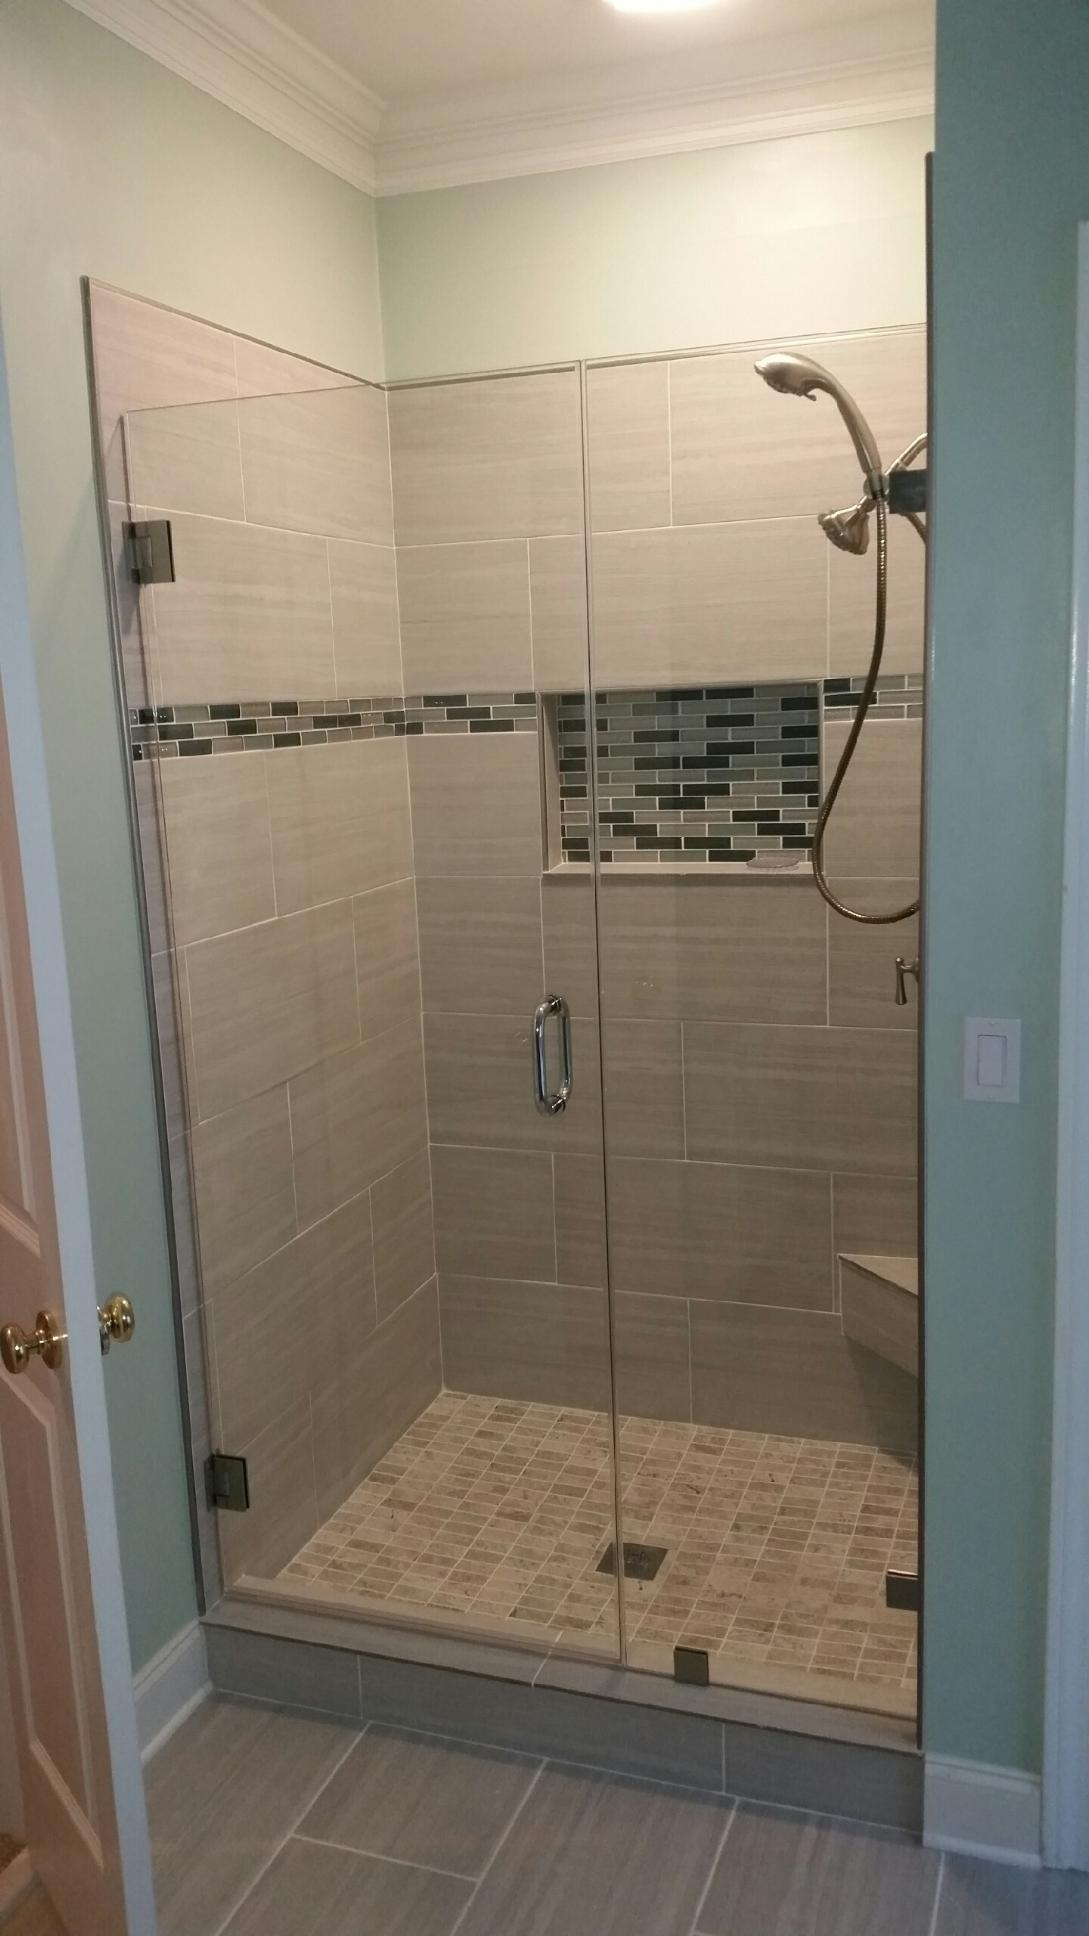 Permalink to The Shower Door Co